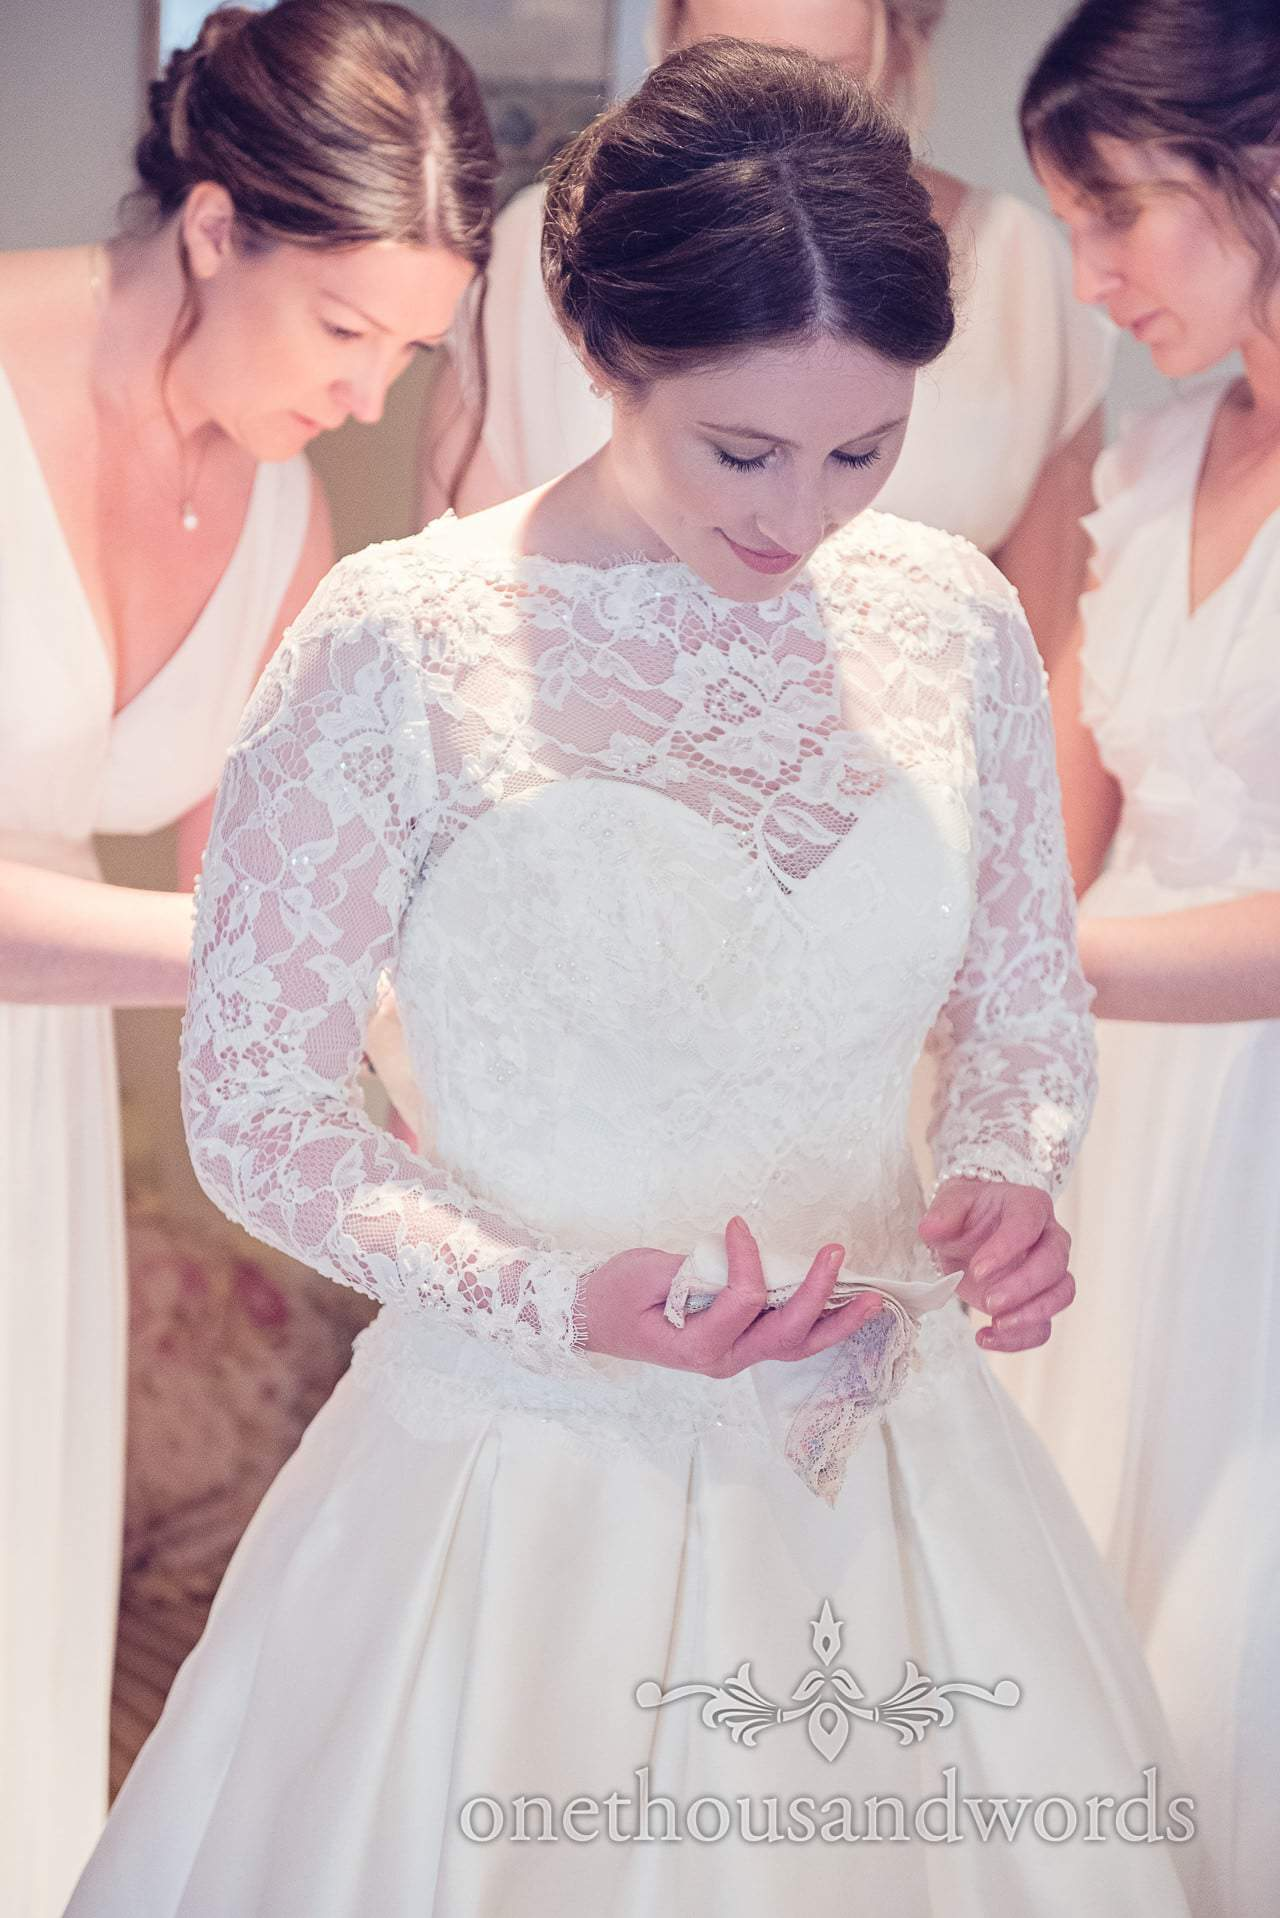 Bride being laced into wedding dress with antique handkerchief